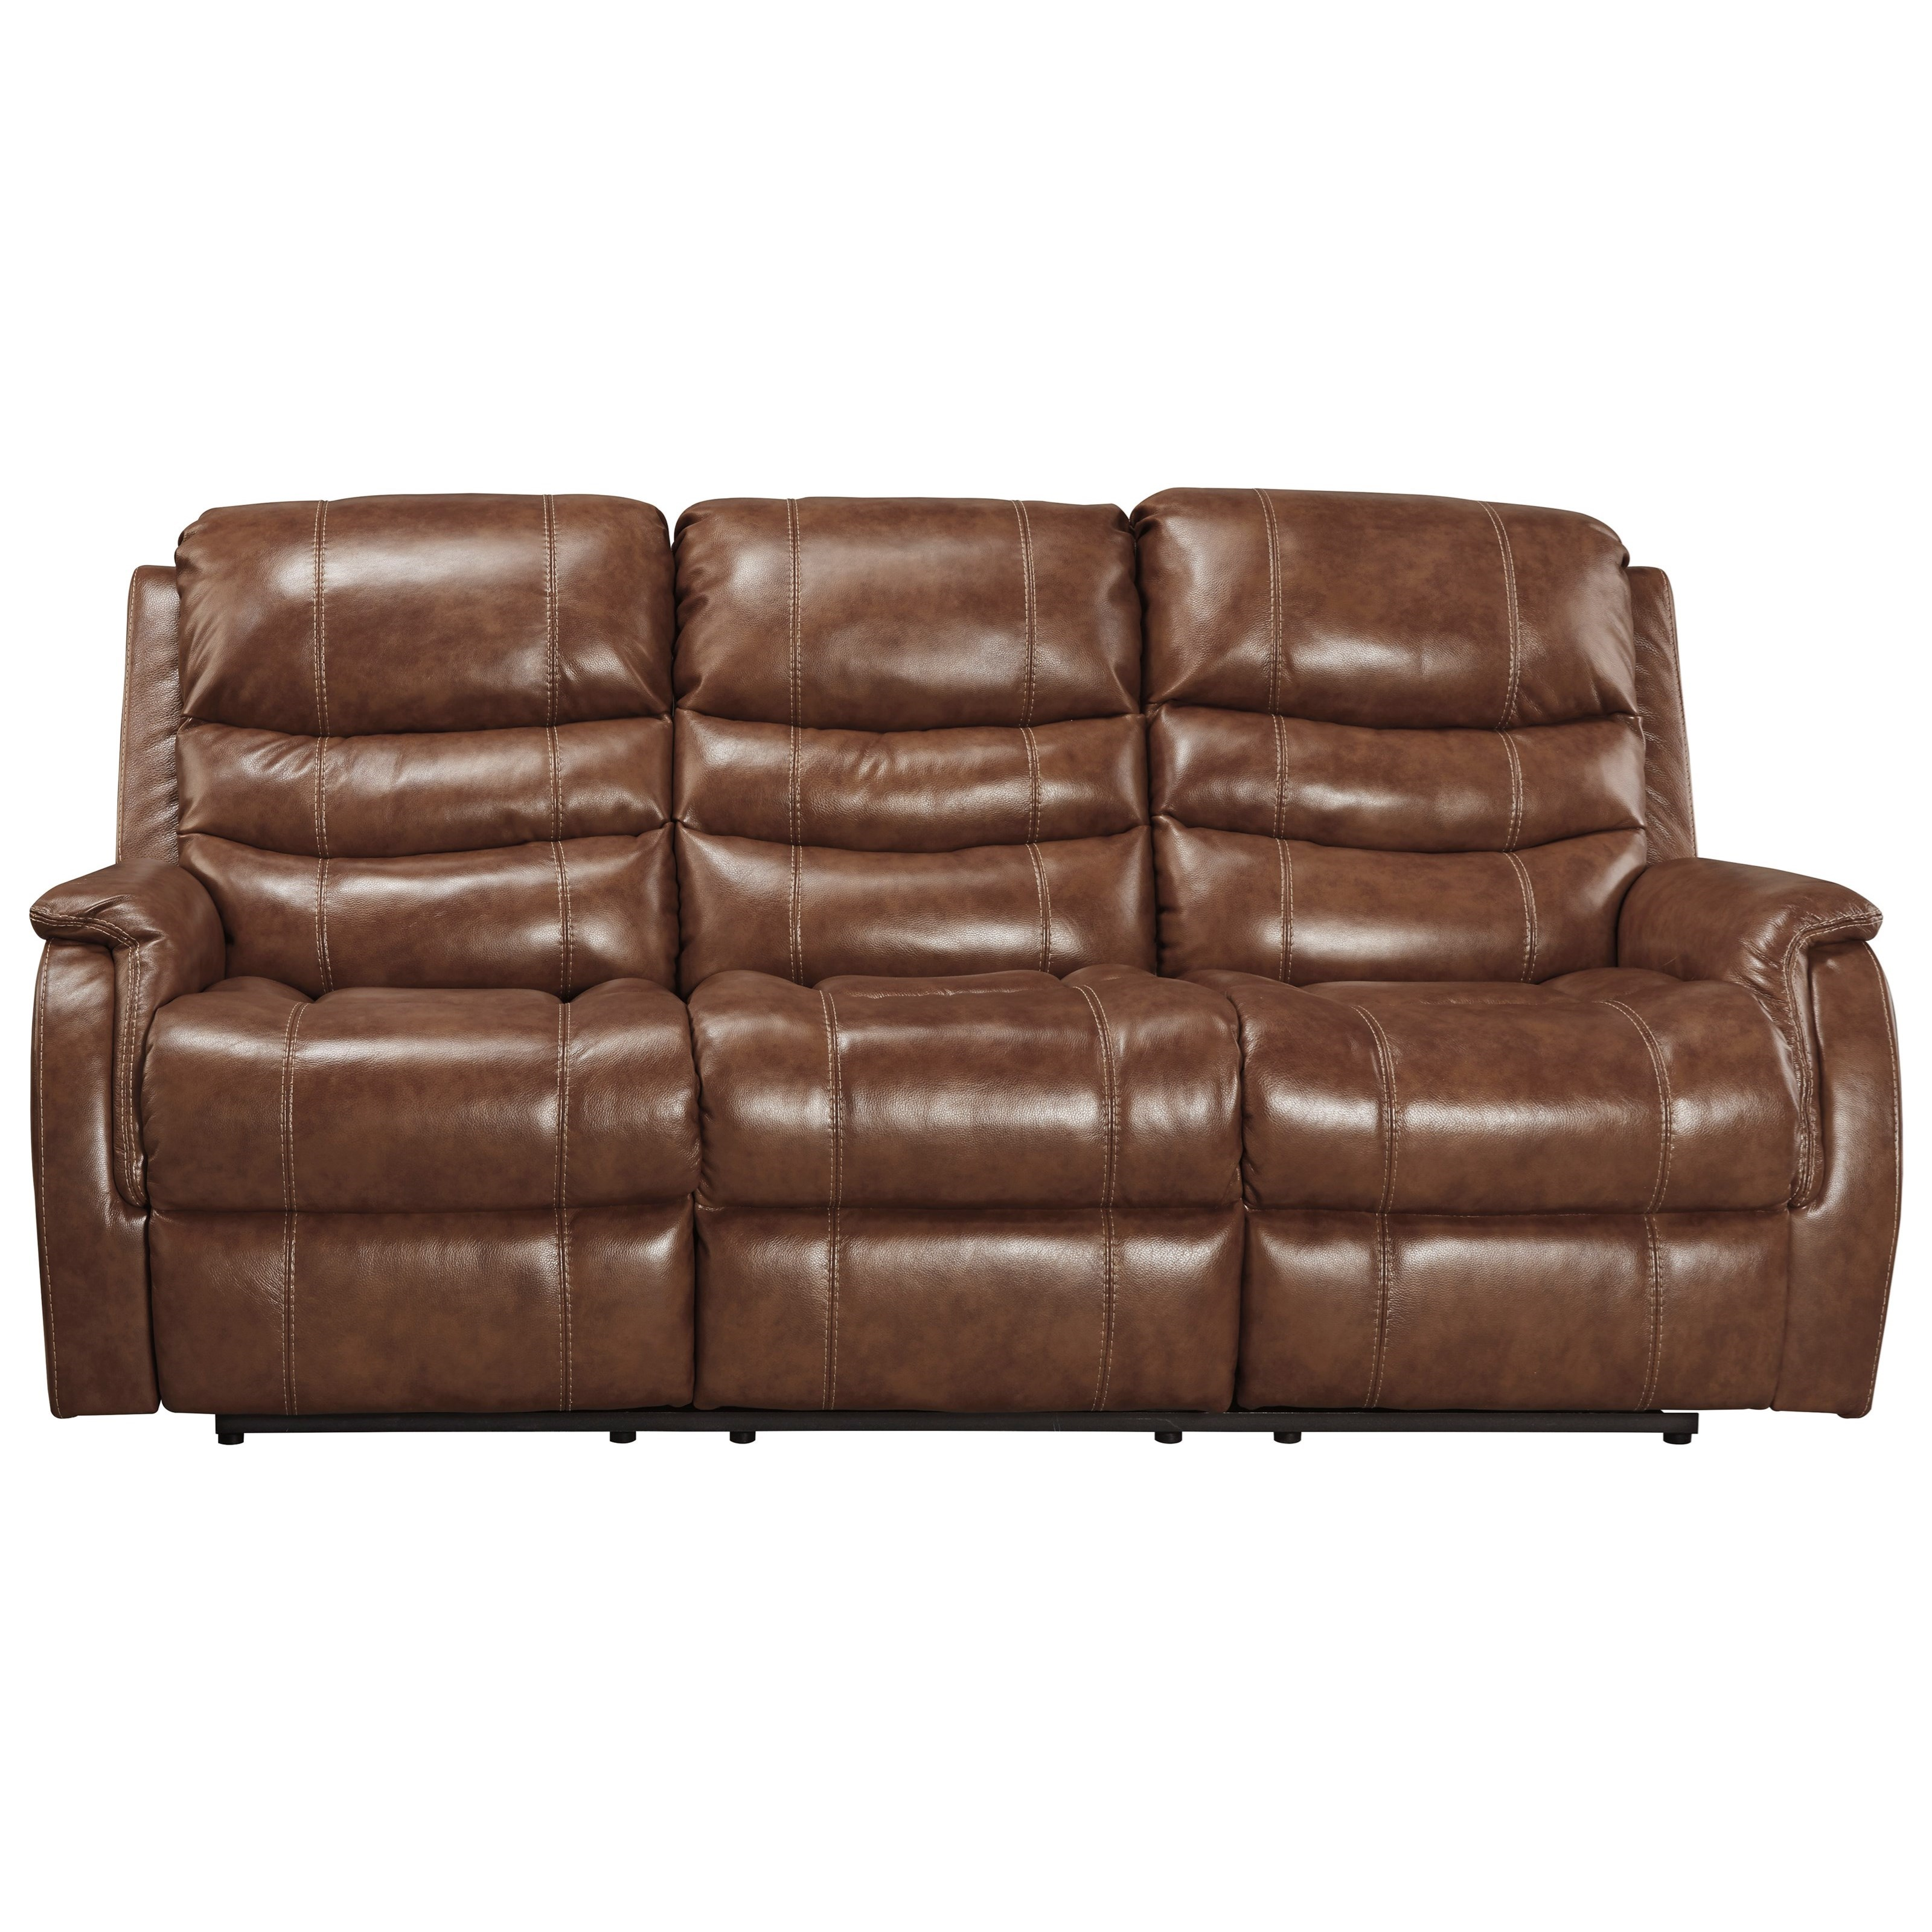 Signature design by ashley metcalf 5090315 leather match for Sectional sofas with recliners ashley